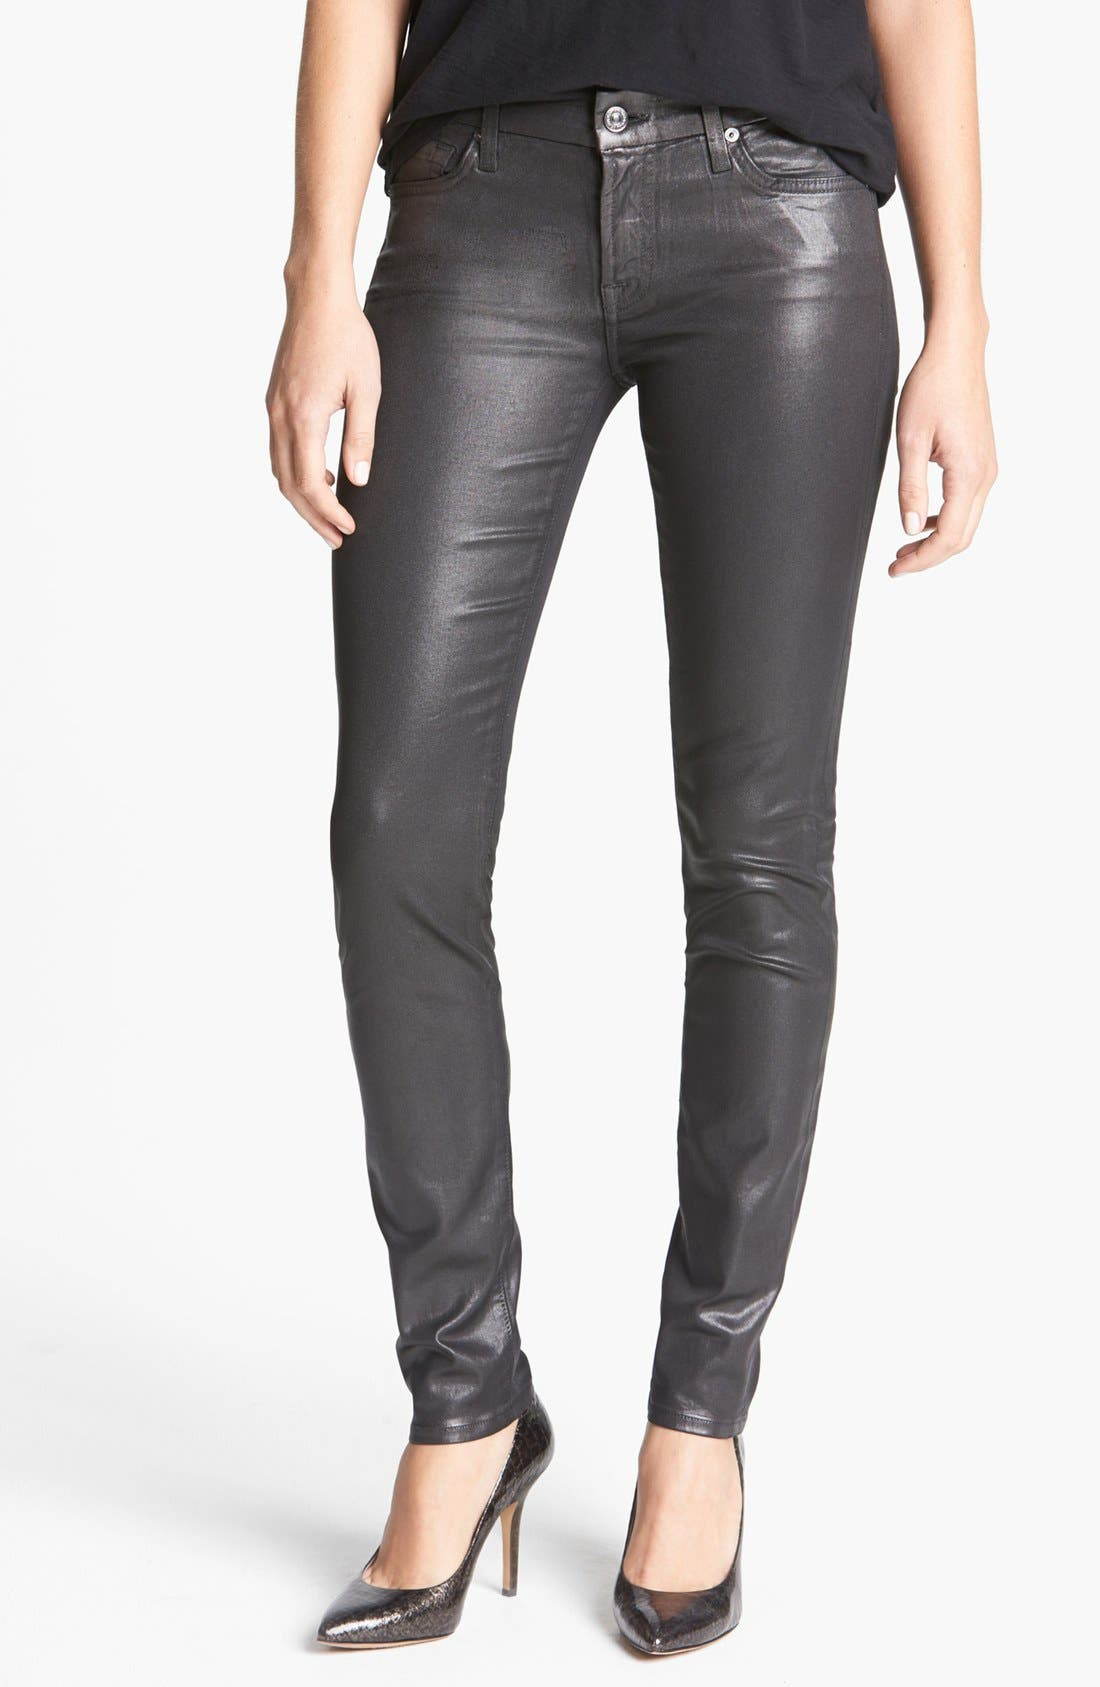 Main Image - 7 For All Mankind® 'Higher Gloss Gummy' Skinny Jeans (Armor Grey)